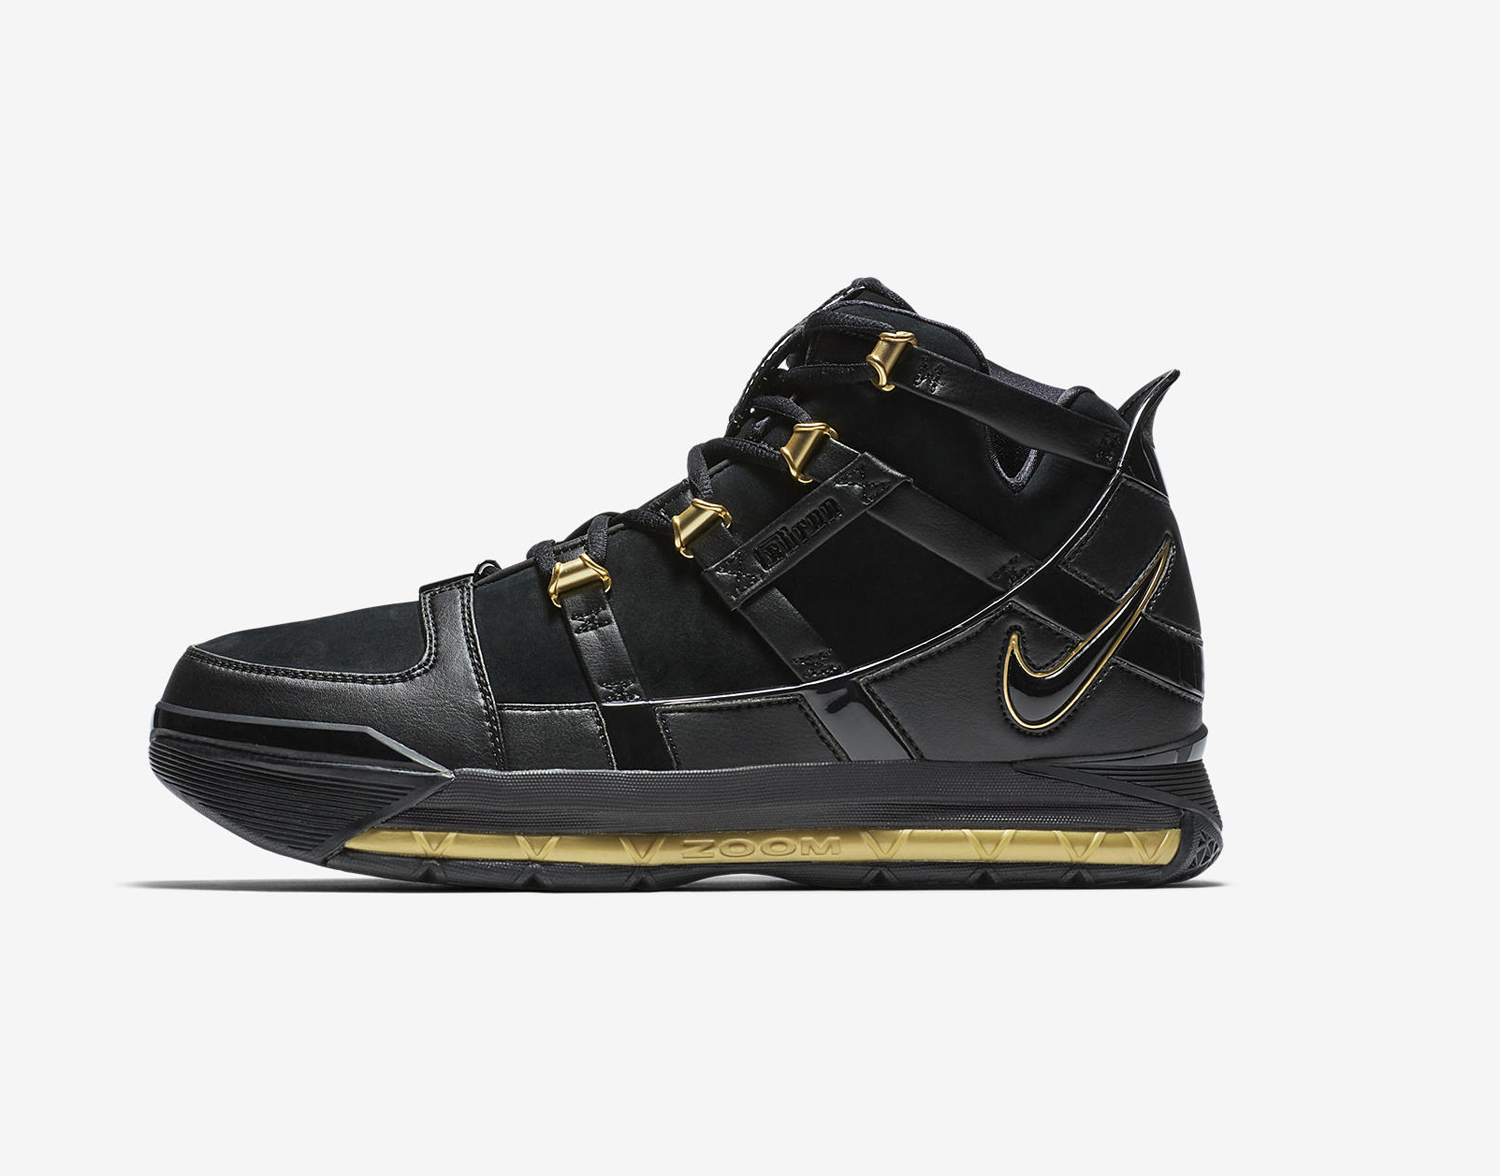 The Nike Zoom LeBron 3 in Black/Gold to